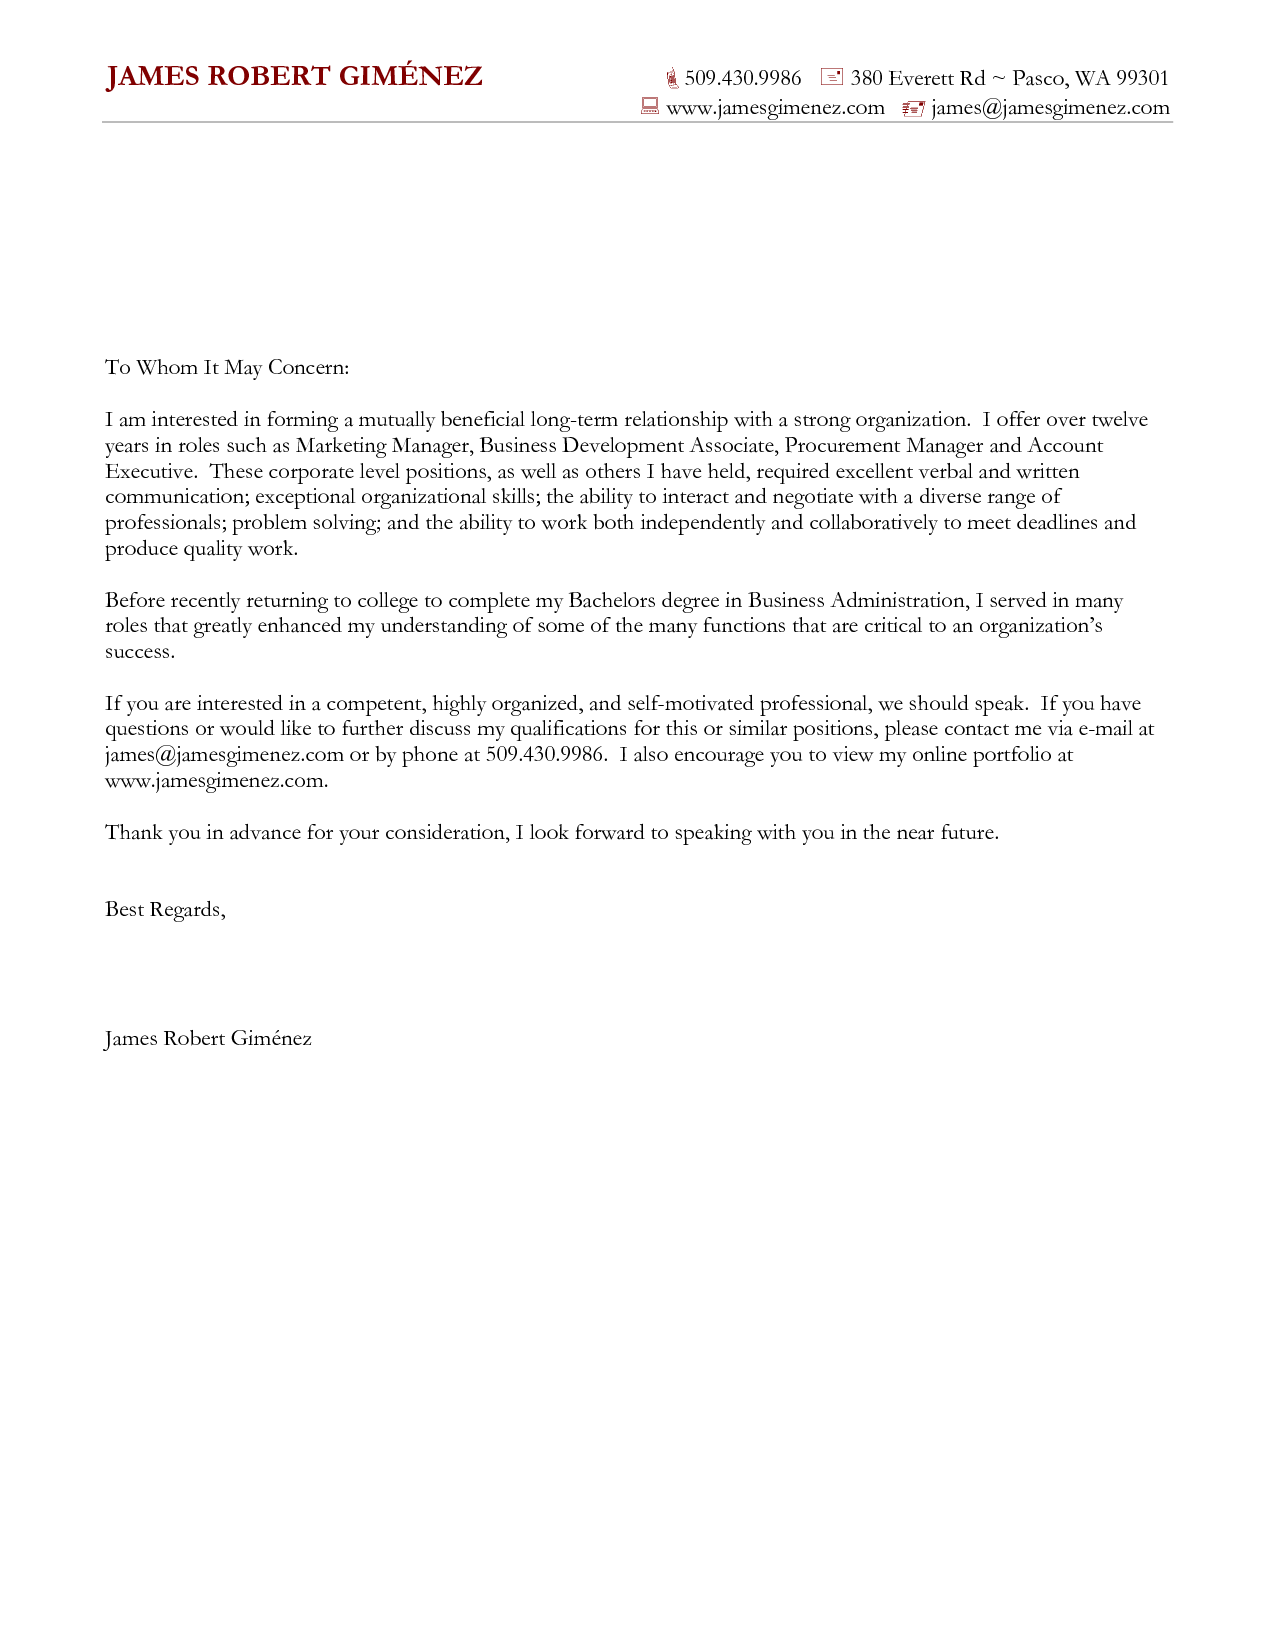 General Cover Letter For Resume Cover Letter For General Application Cover Letter Guidesimple